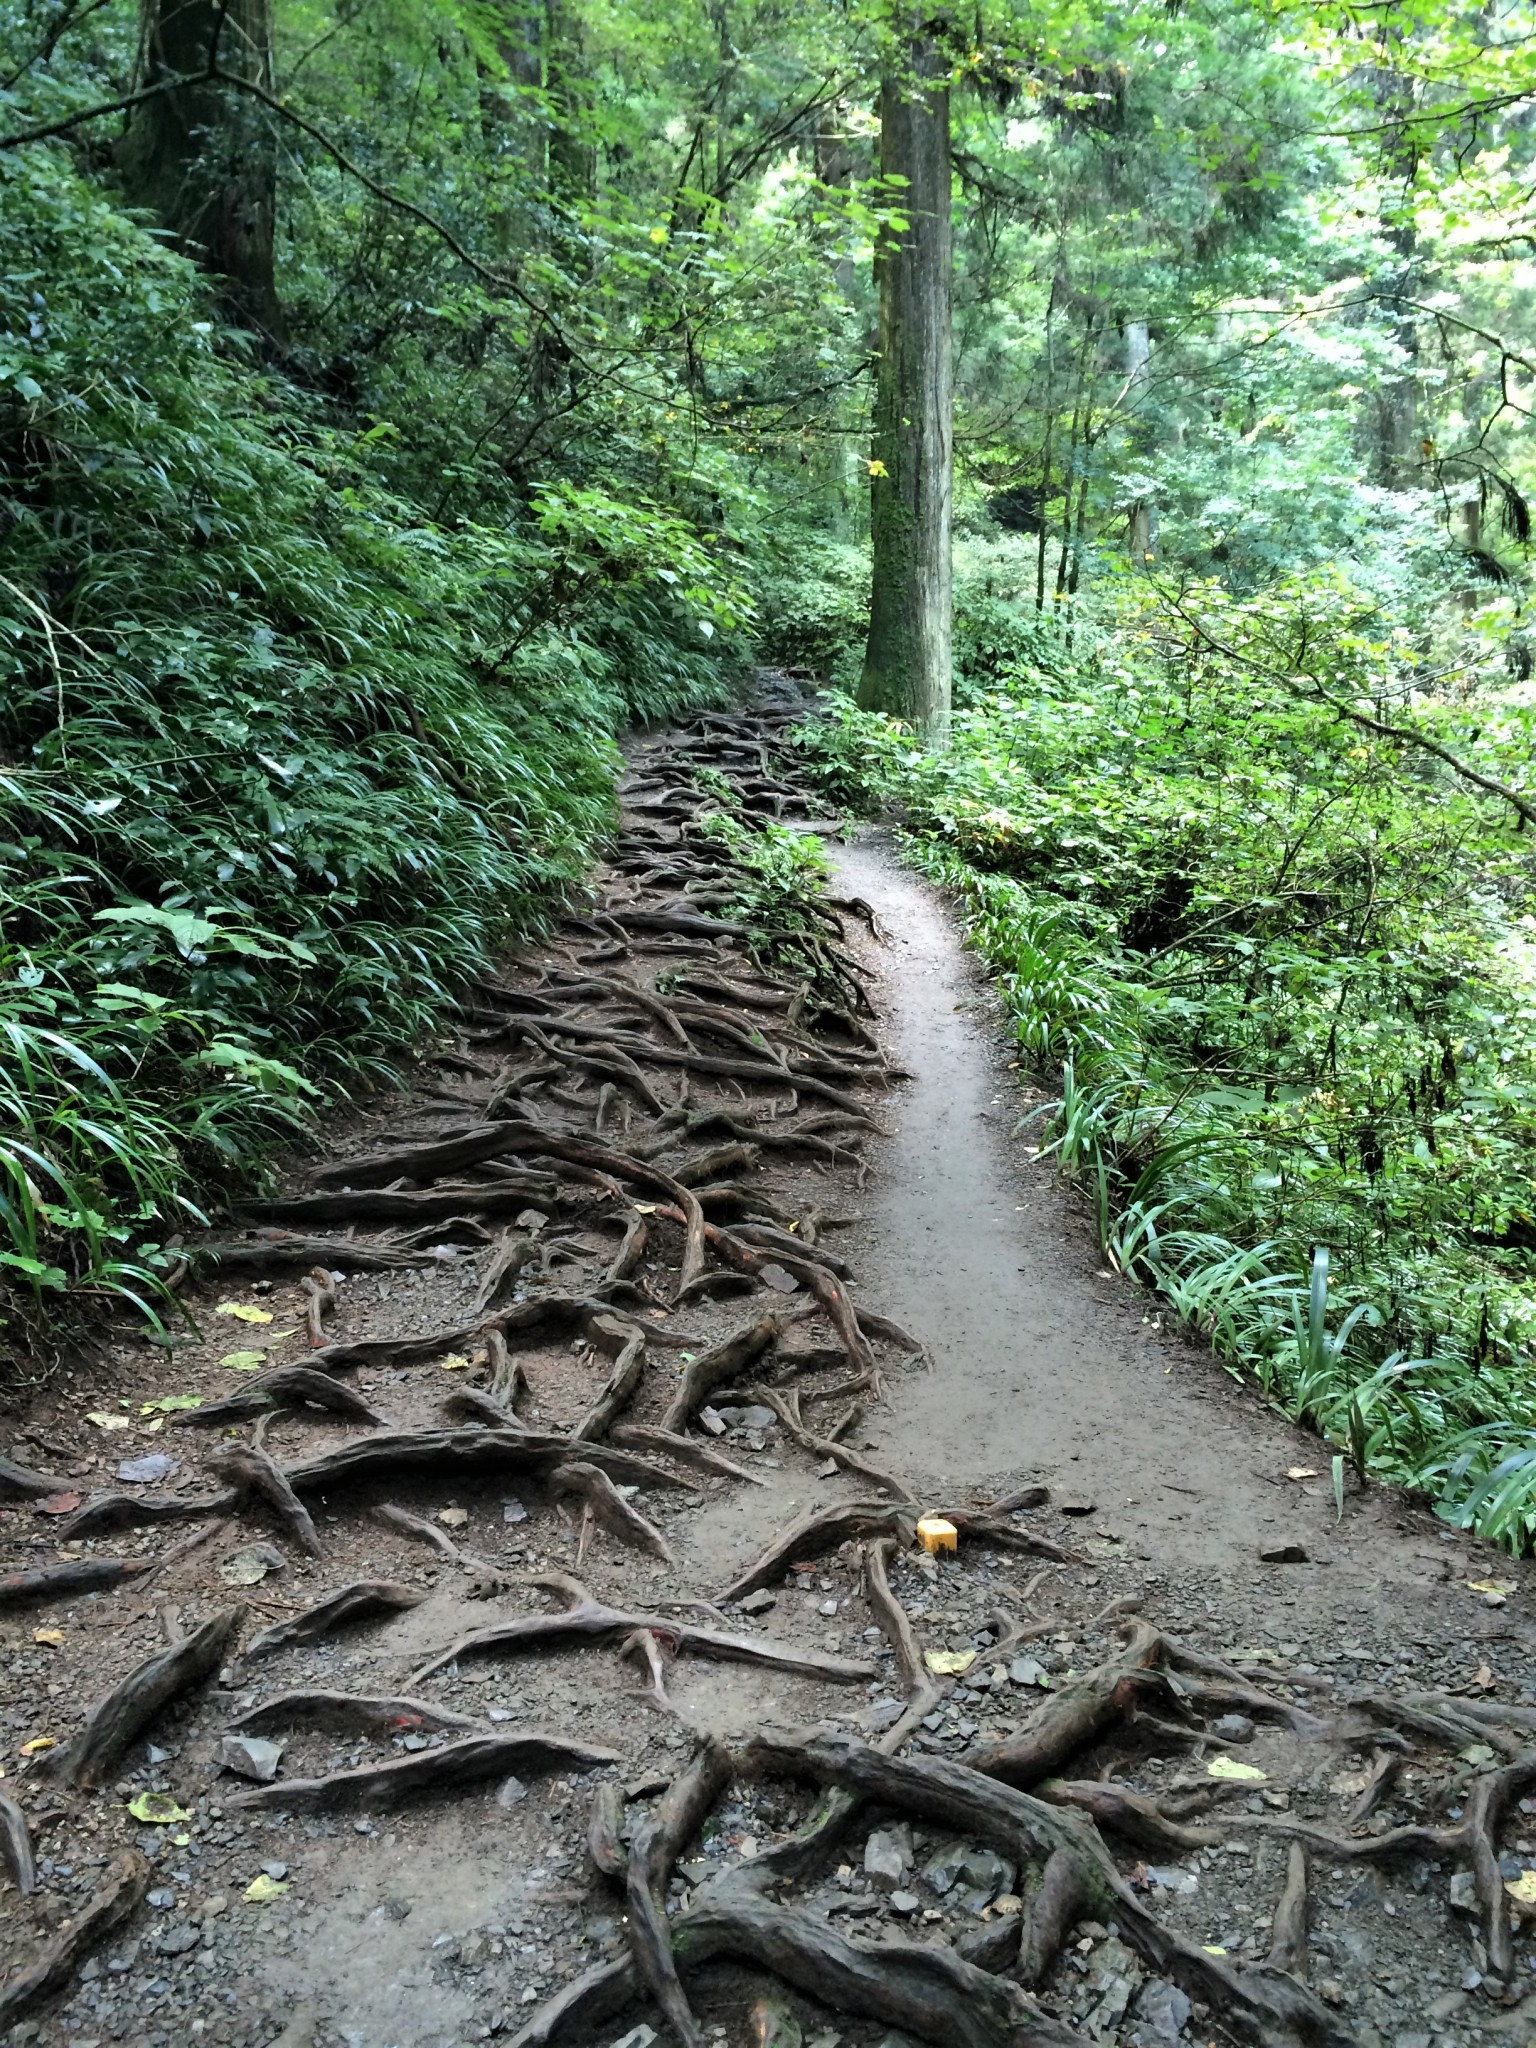 A path covered with tree roots leading through a forest in Japan.